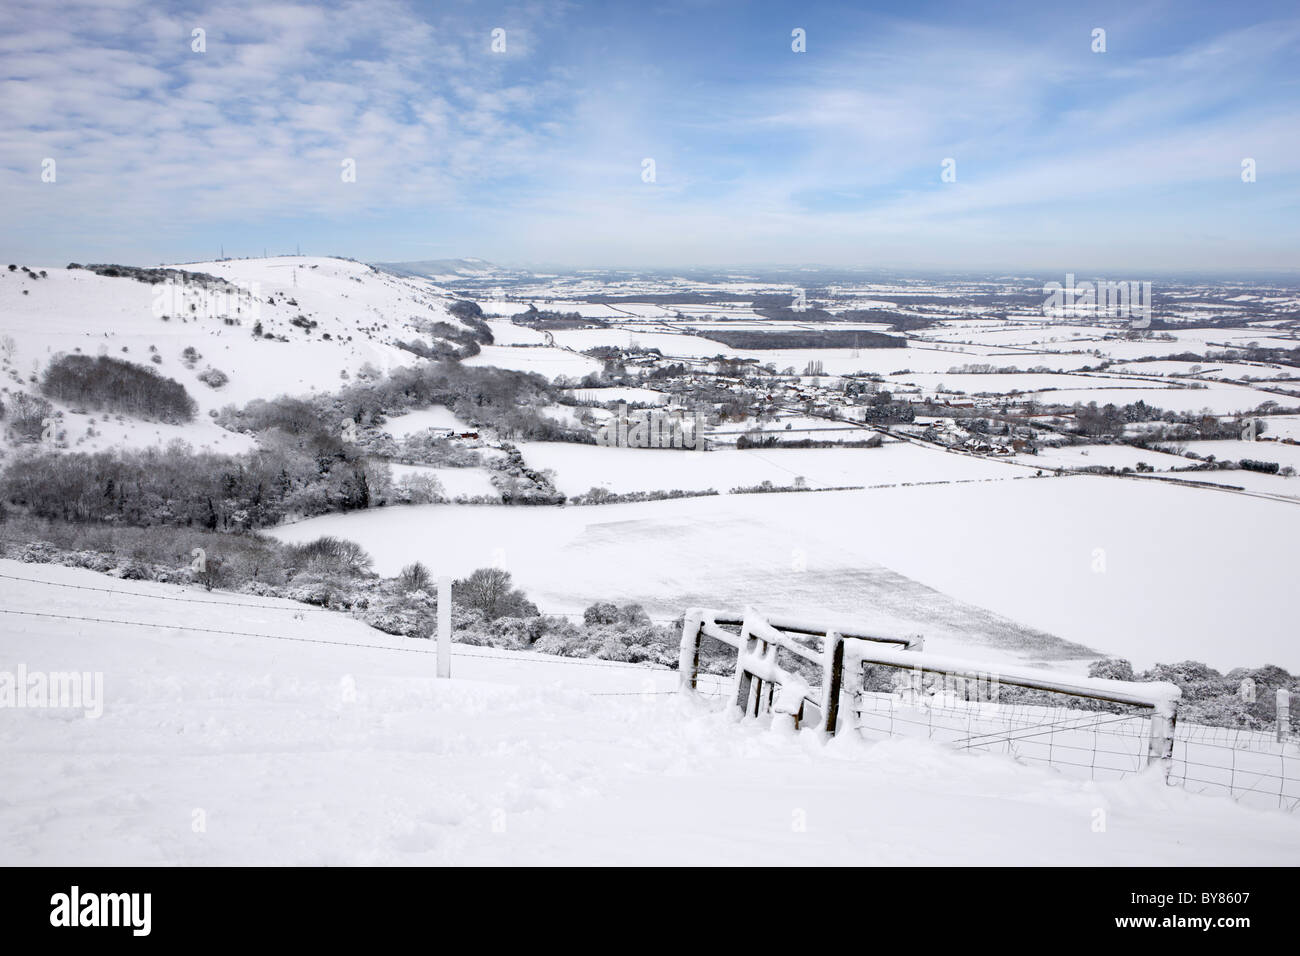 View from Devils Dyke after heavy snow fall across the Sussex Weald and the South Downs National Park. - Stock Image